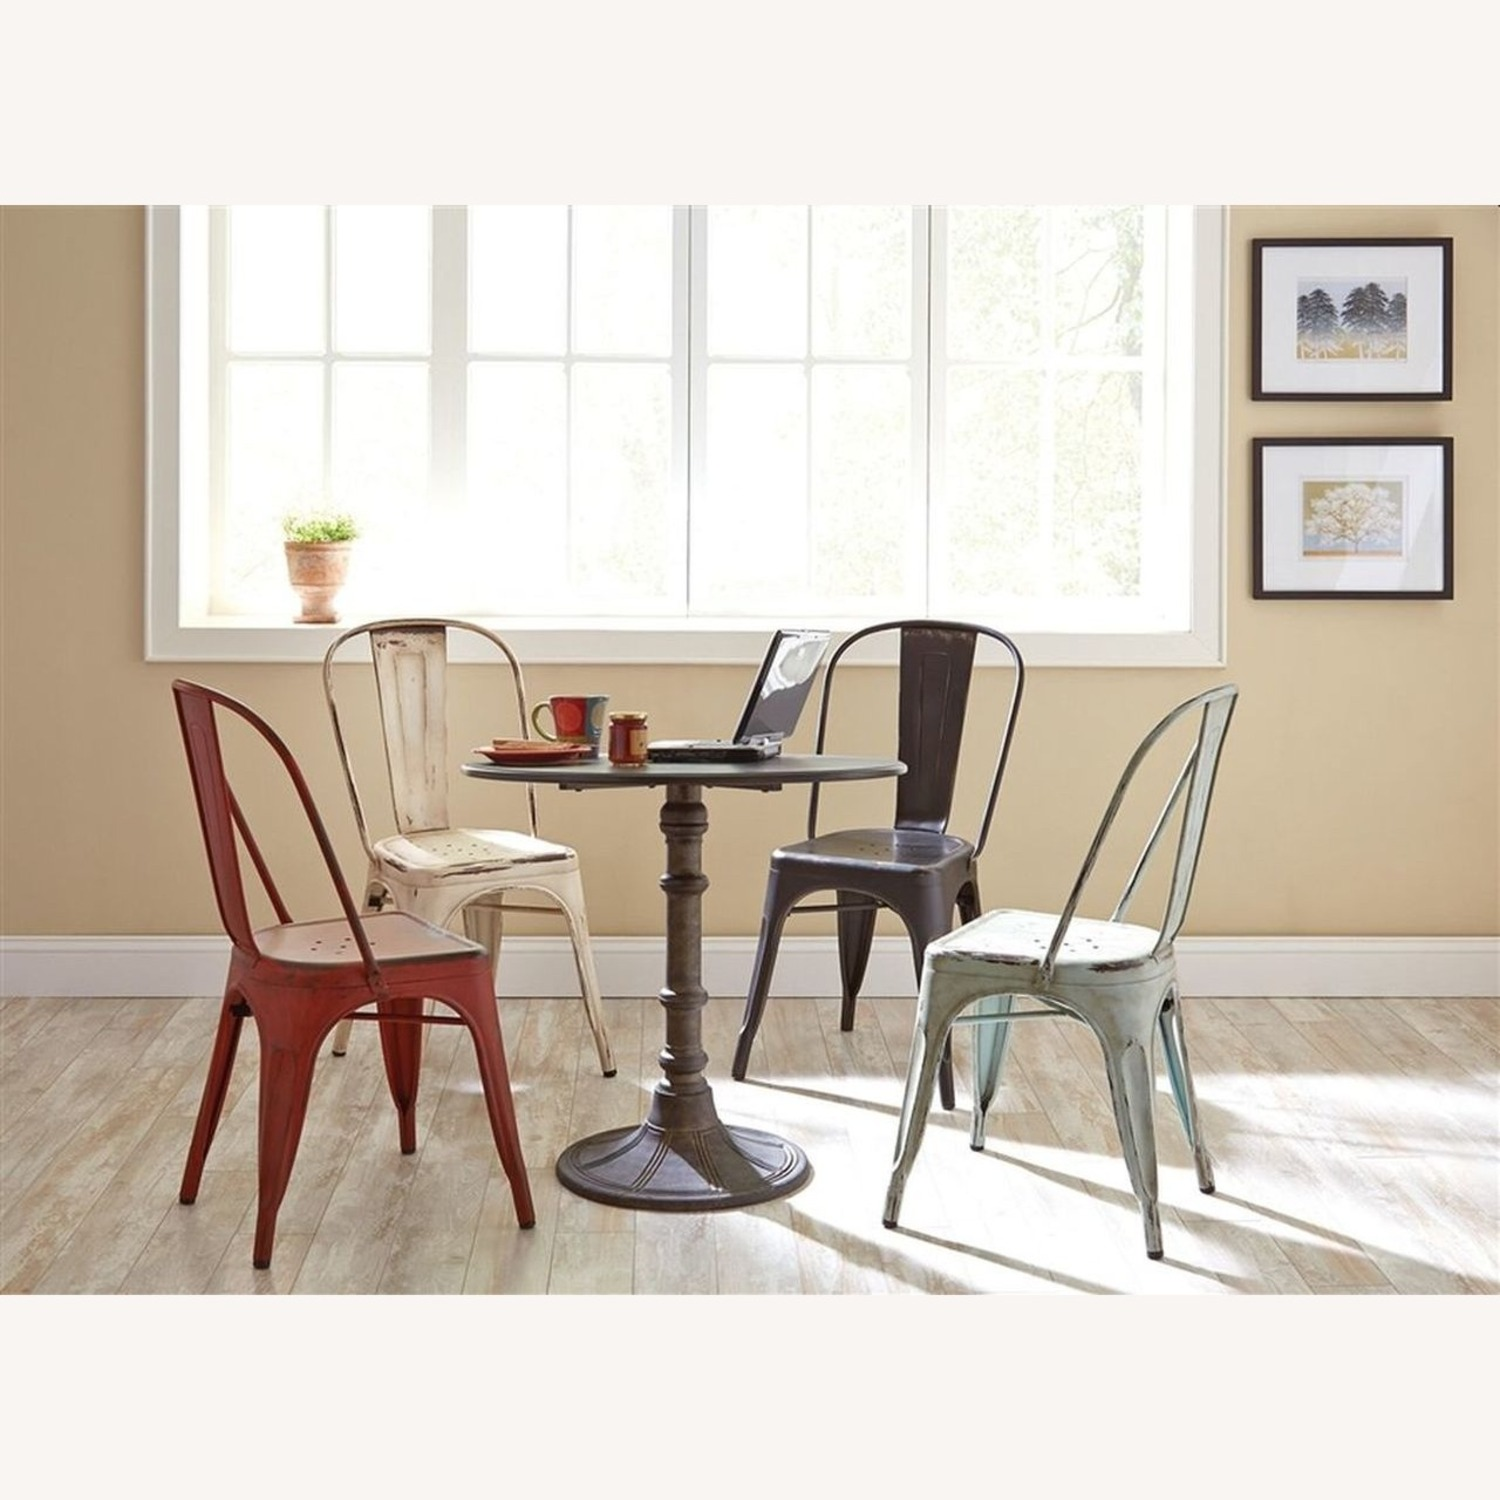 Modern Industrial Dining Chair In White Metal - image-3